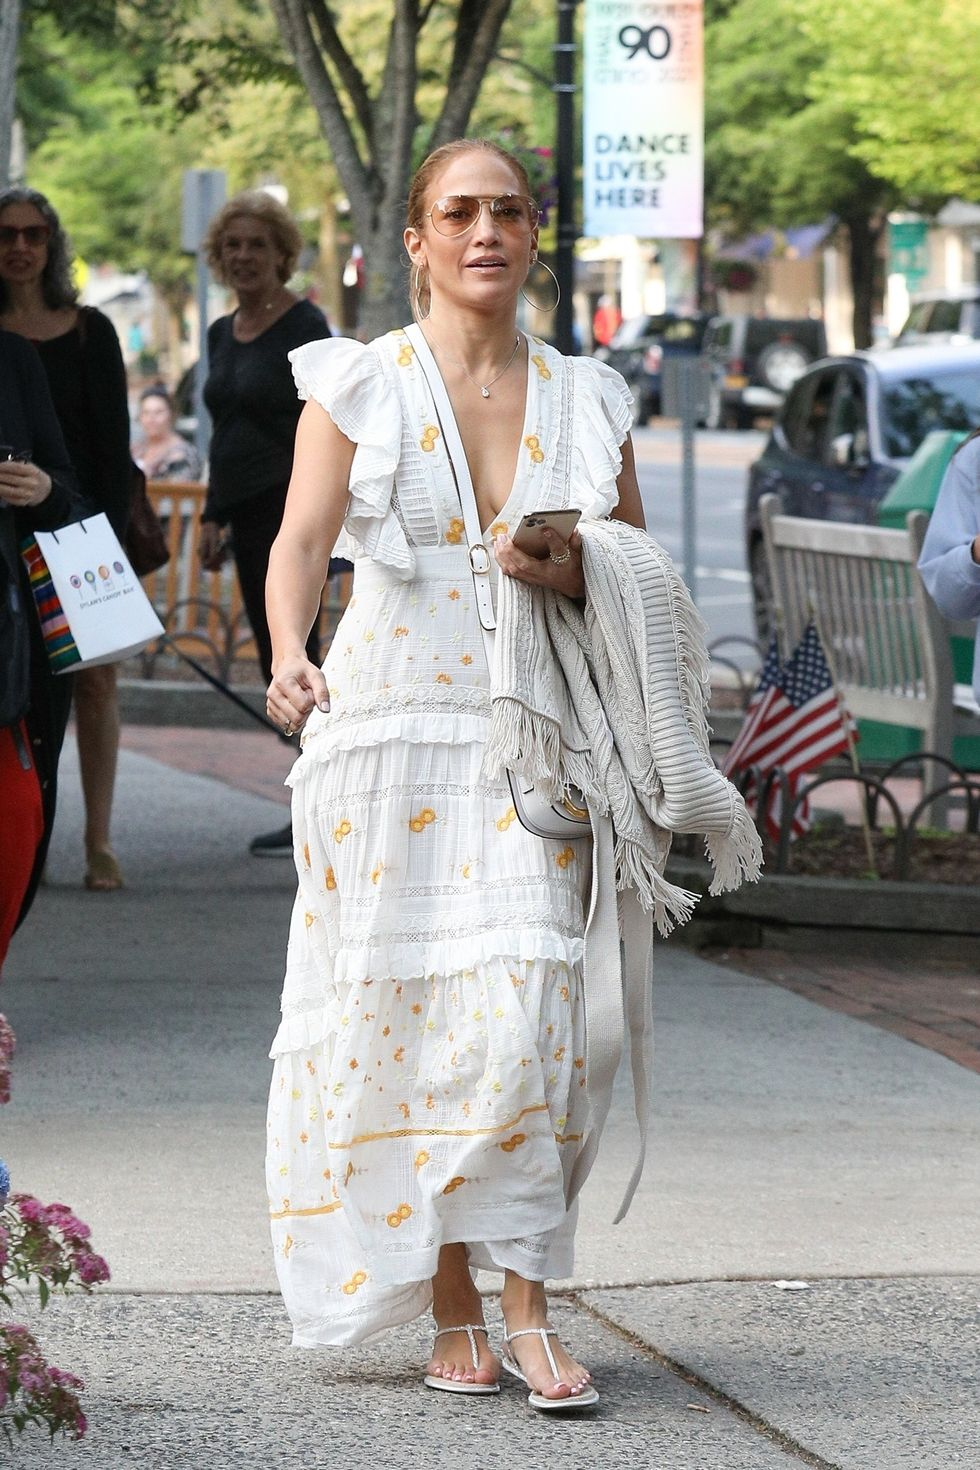 Jennifer Lopez Wore a Chic White Plunge Dress To Go Shopping in the Hamptons